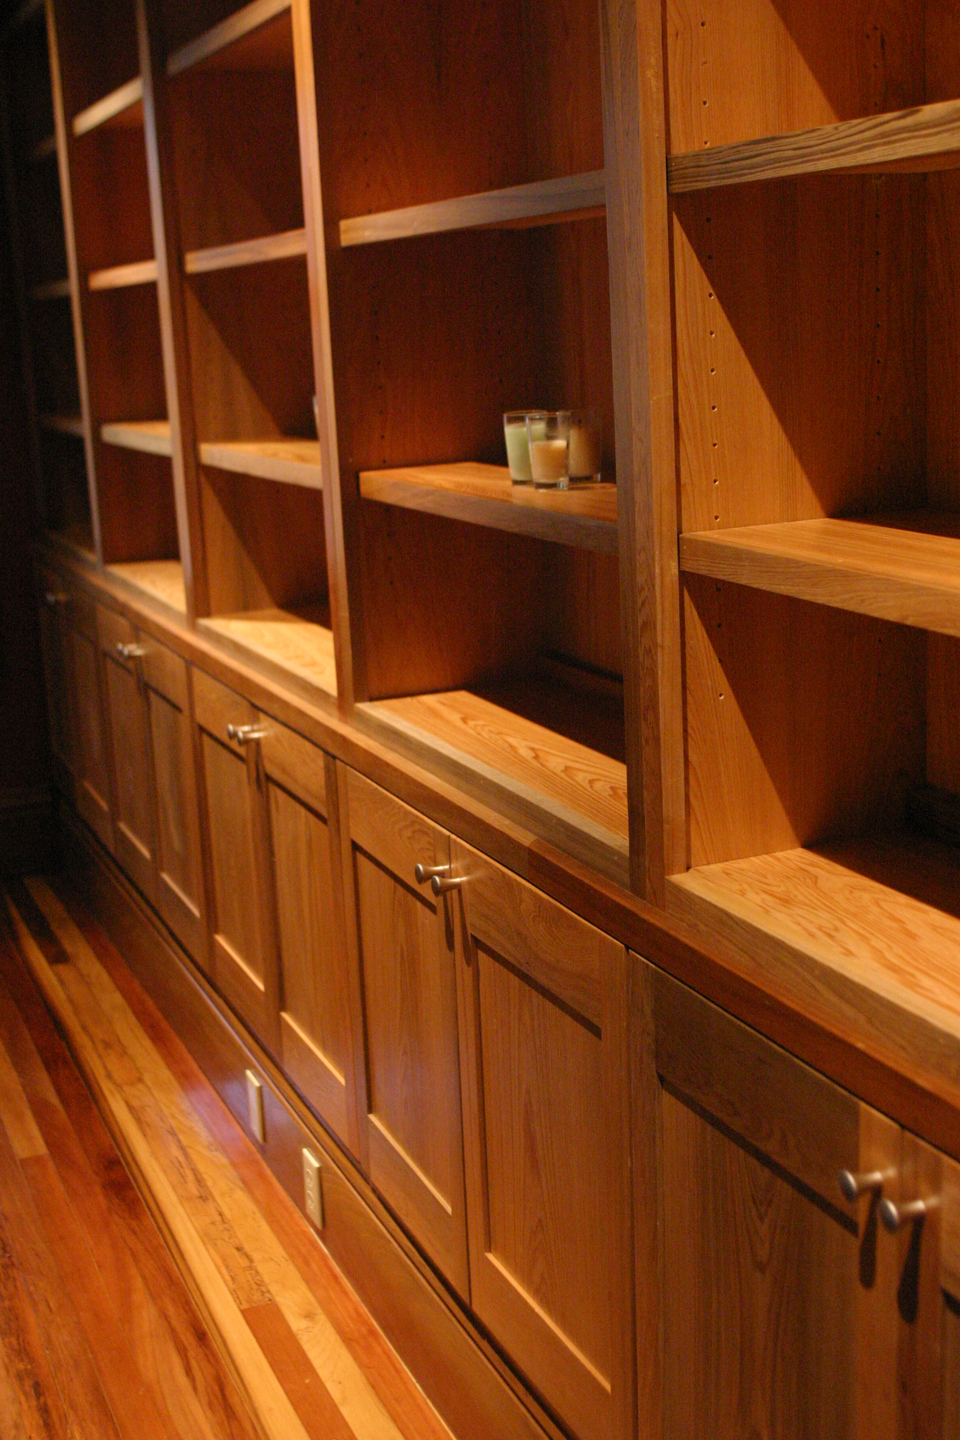 Cypress Cabinetry. Courtesy Acadian Cypress And Hardwoods